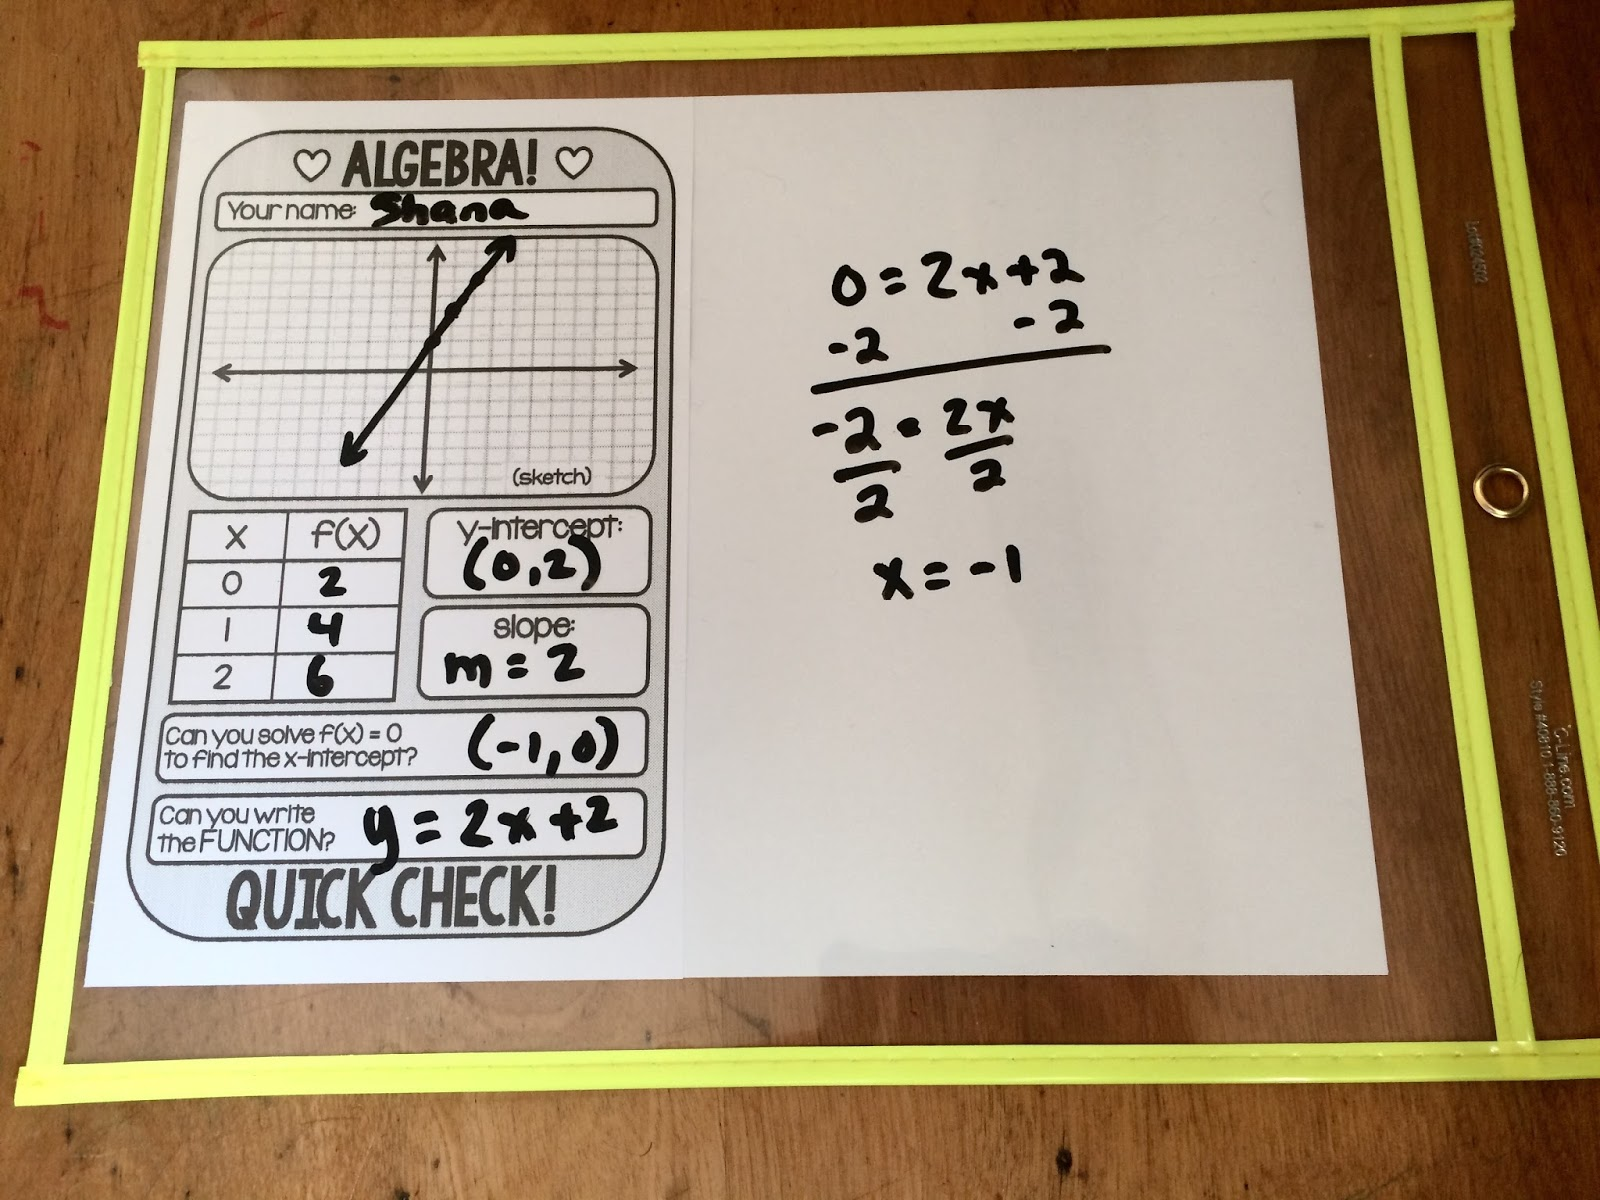 Scaffolded Math And Science Algebra 1 Warm Up Template